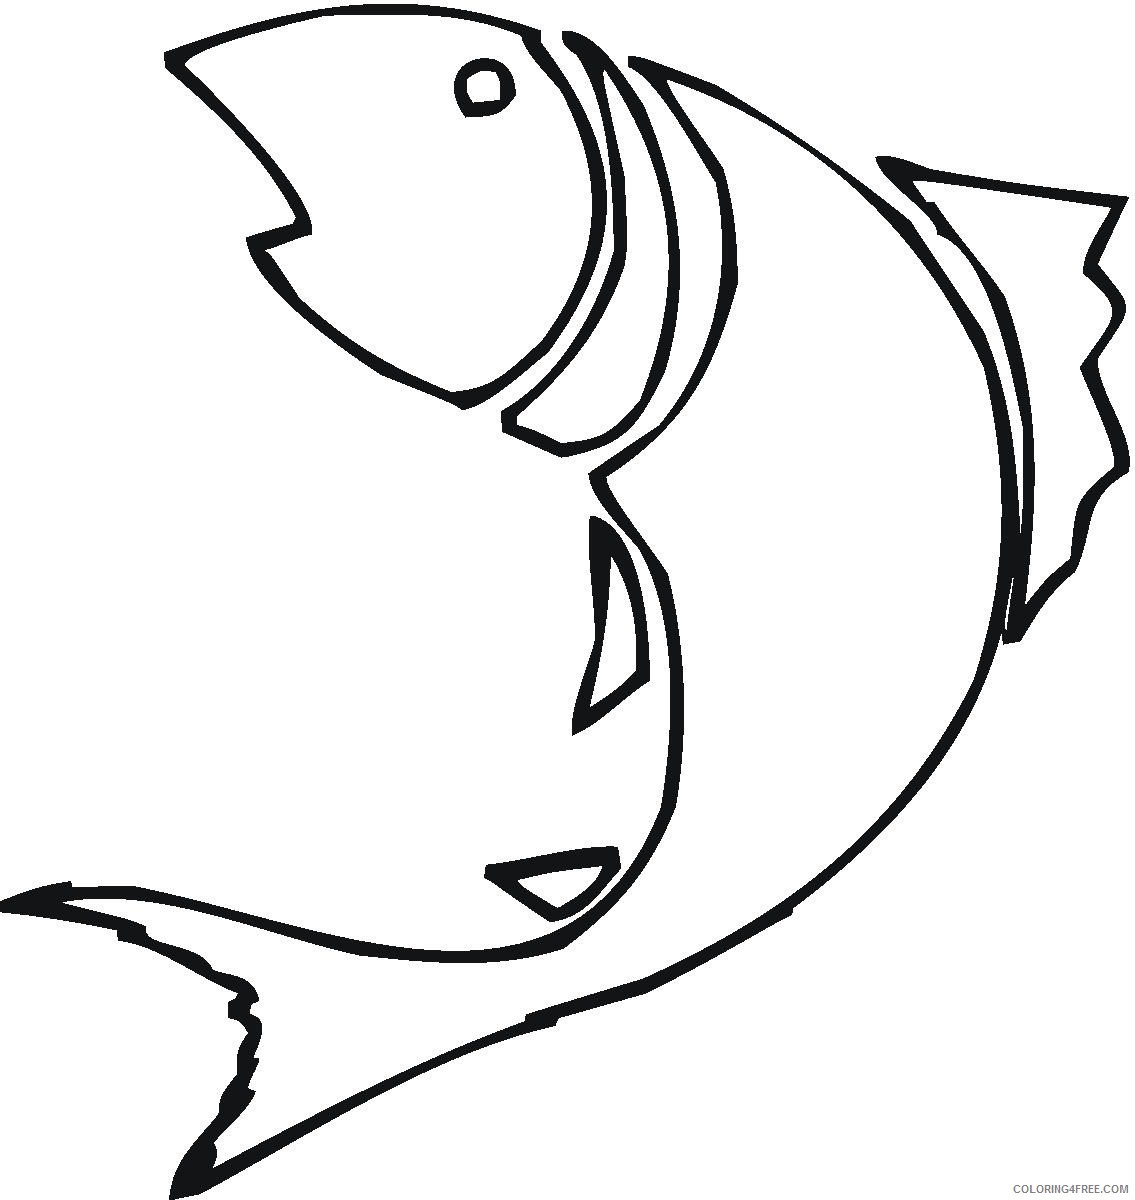 Fish Outline Coloring Pages fish outline bfree Printable Coloring4free